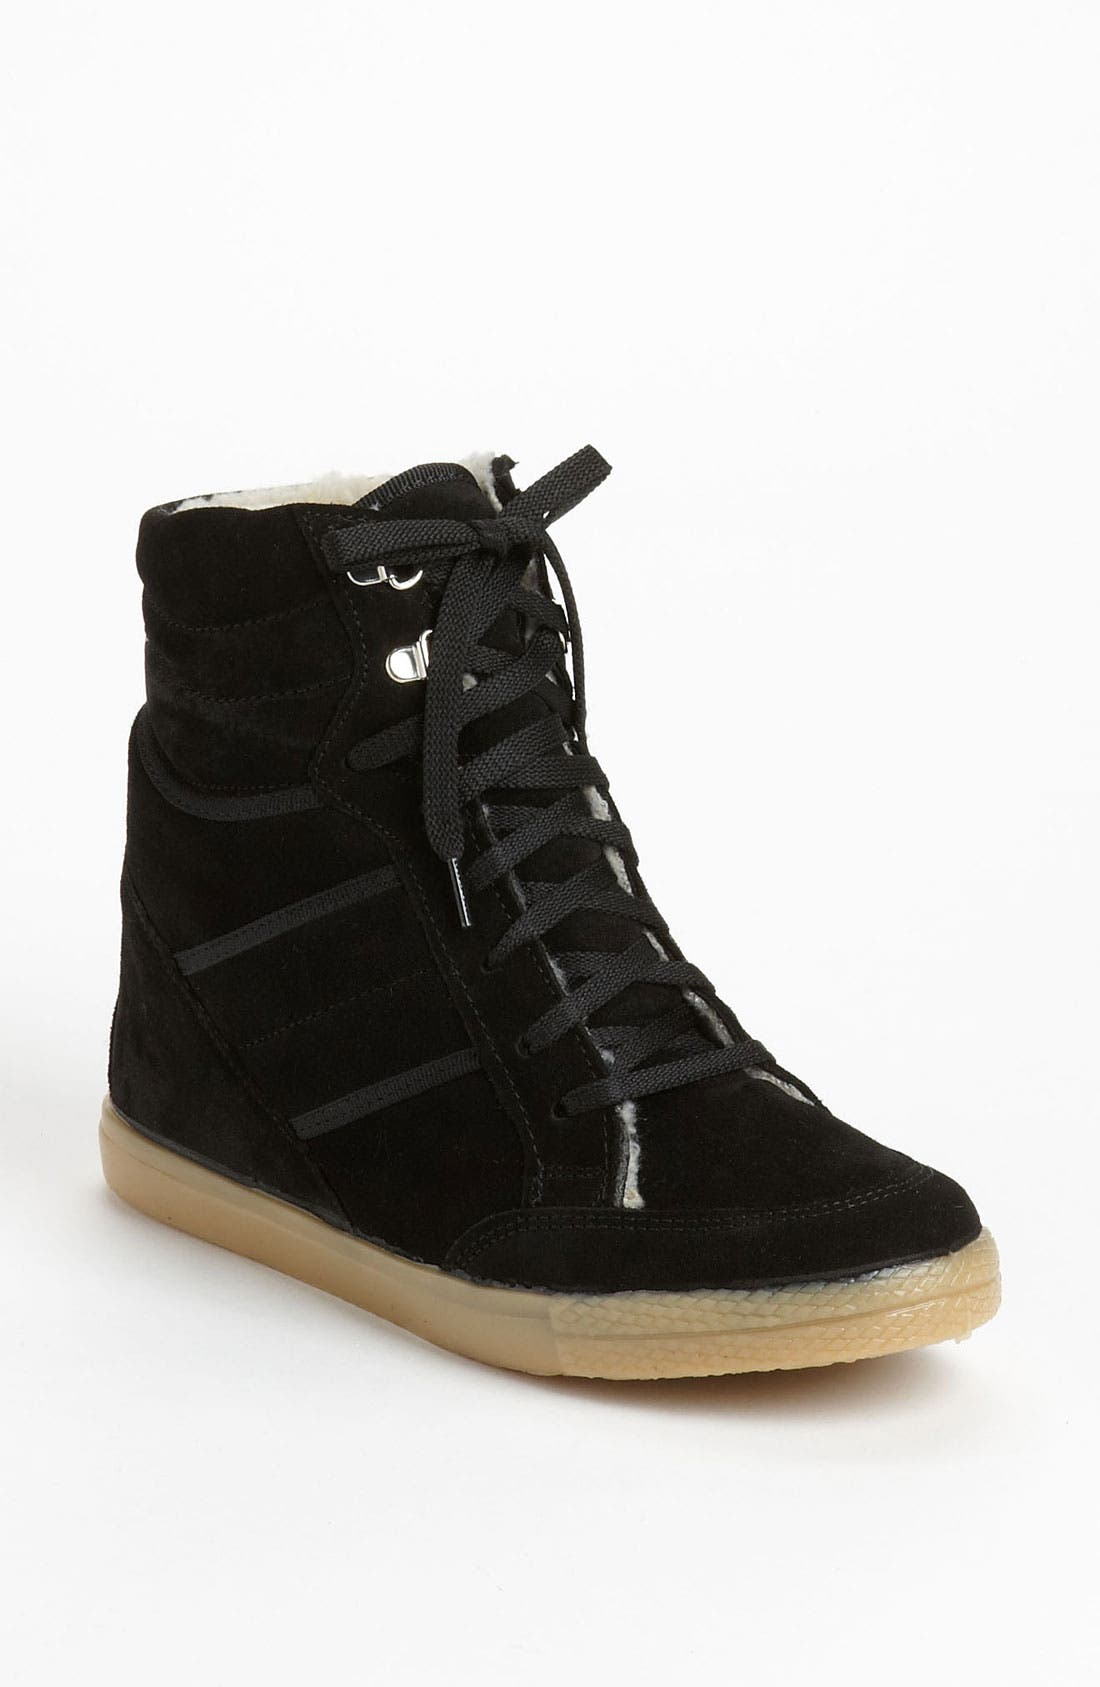 Alternate Image 1 Selected - Topshop 'Accabusi Hiker' Sneaker